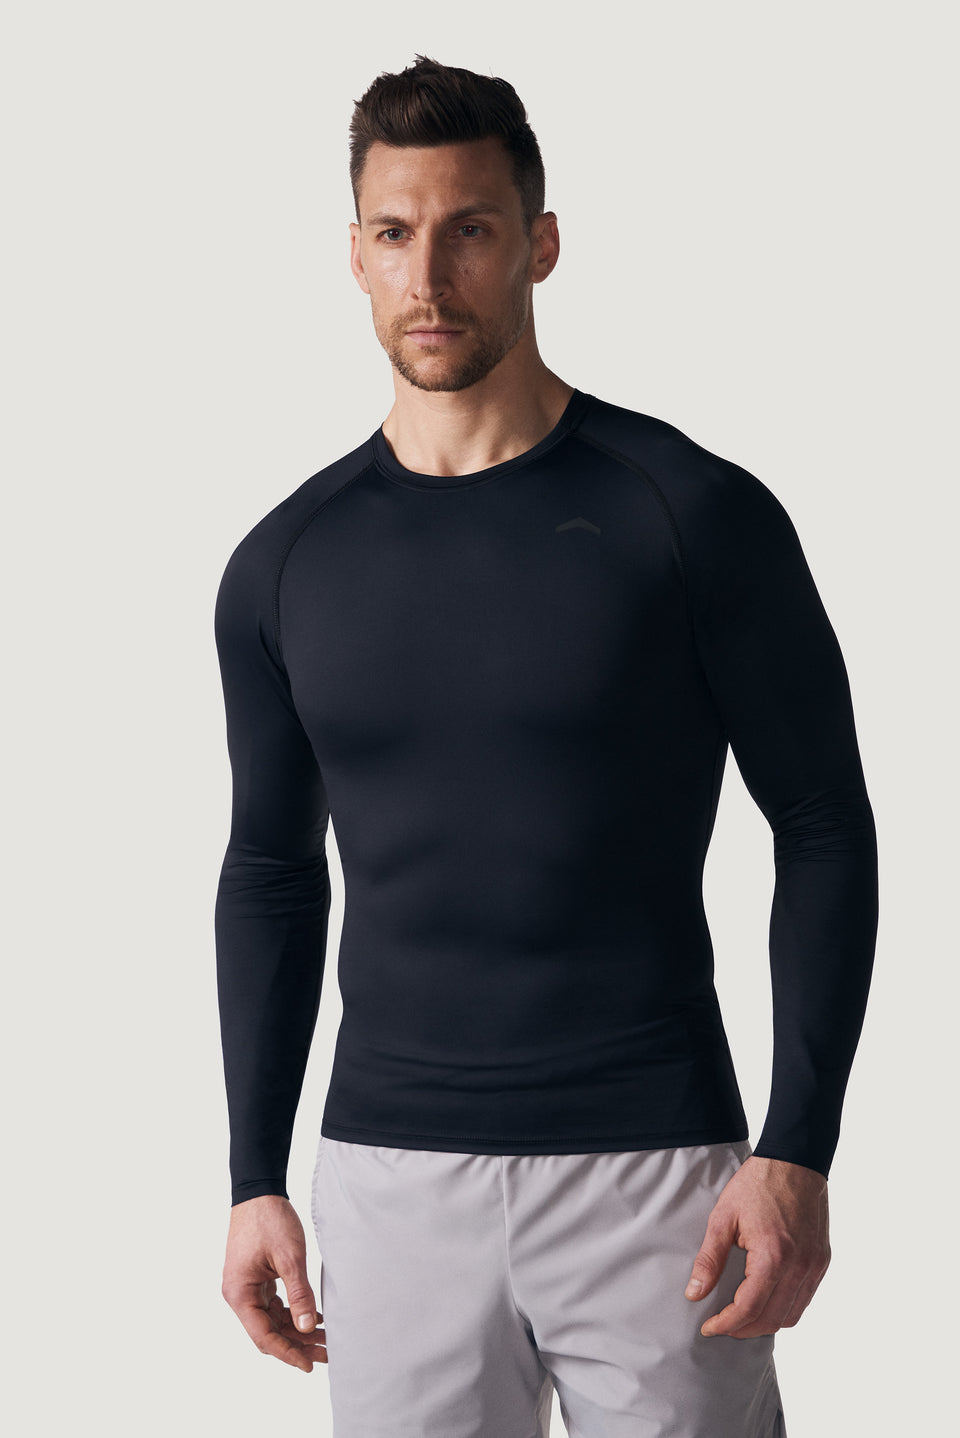 TMPL Men's Progress Longsleeve Compression Jersey